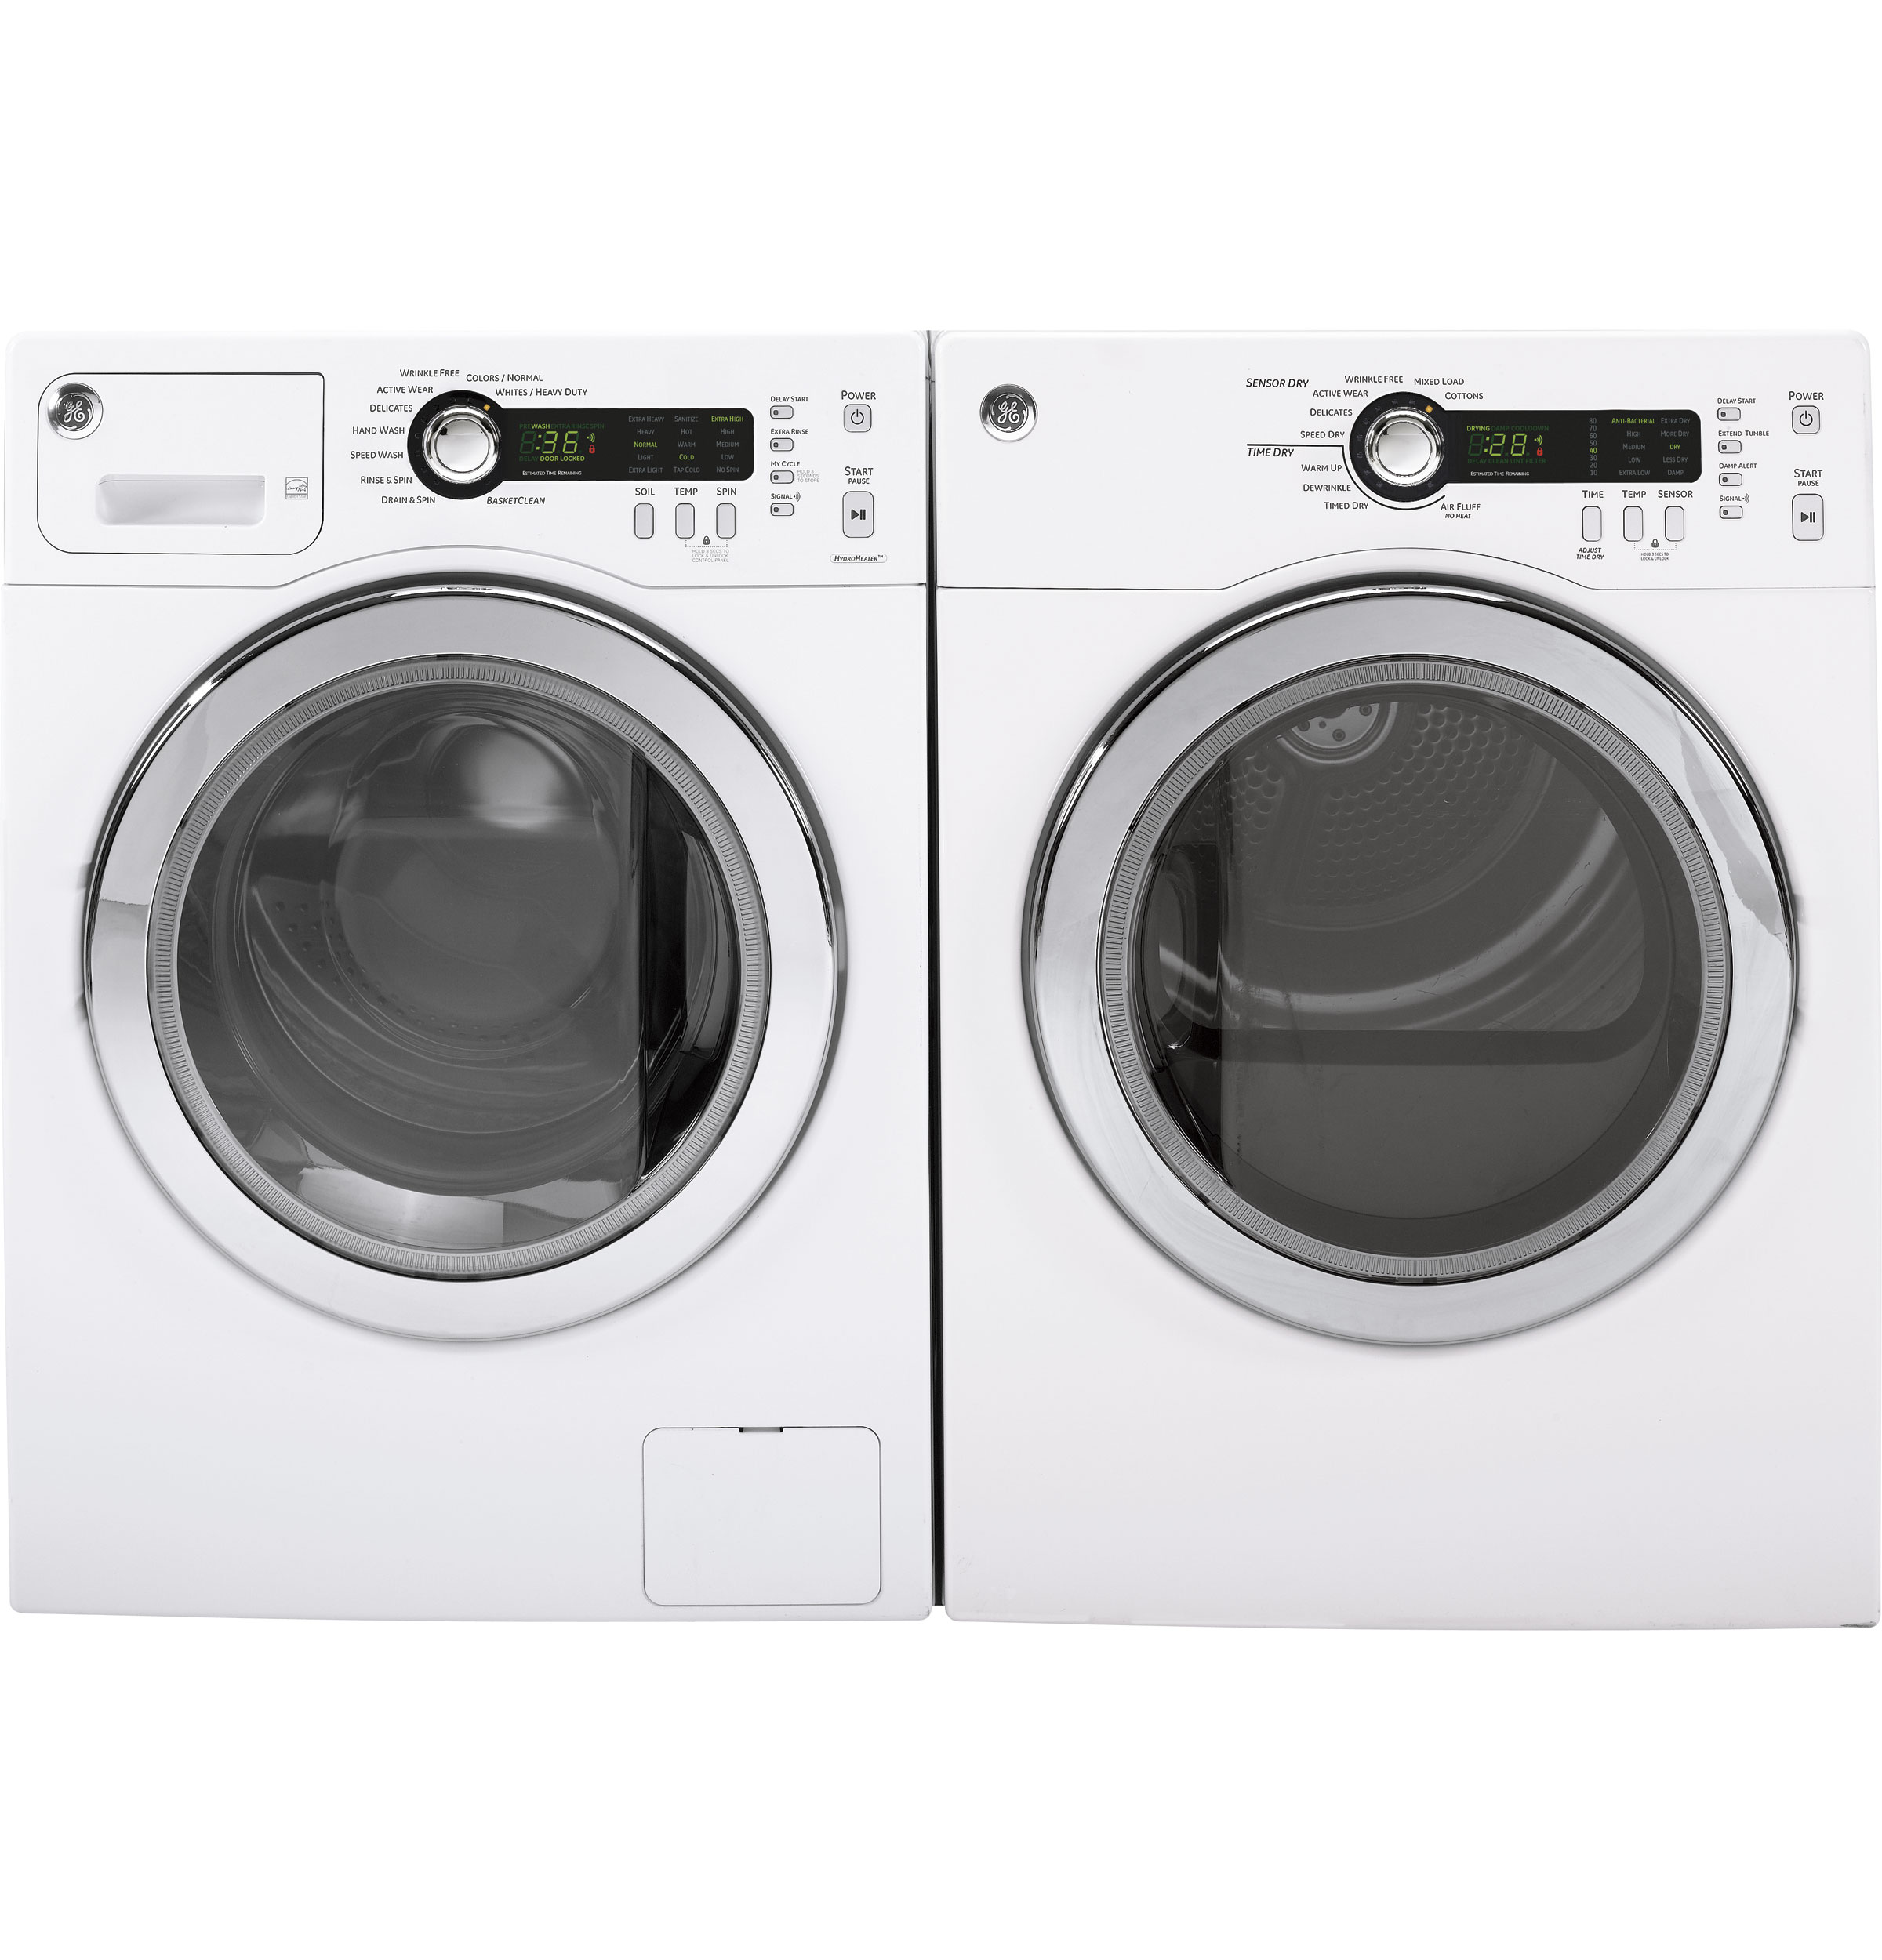 Front Load Washer Dimensions Gear 22 Doe Cu Ft Frontload Washer Wcvh4800kww Ge Appliances